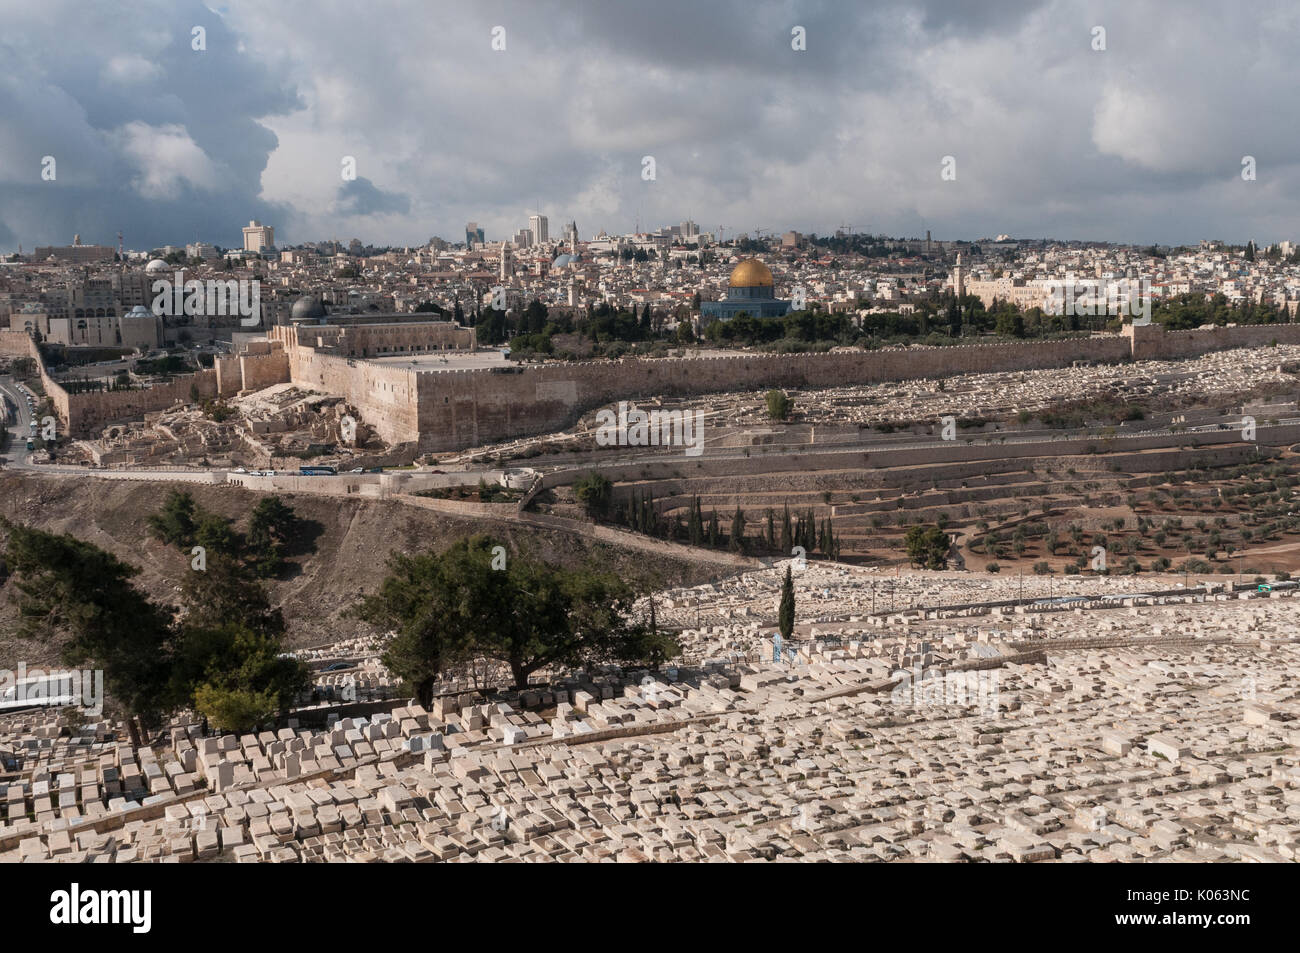 Jewish cemetery on the Mount of Olives in Jerusalem, Israel. This burial site holds about 150,000 graves and has been used for over 3,000 years. - Stock Image